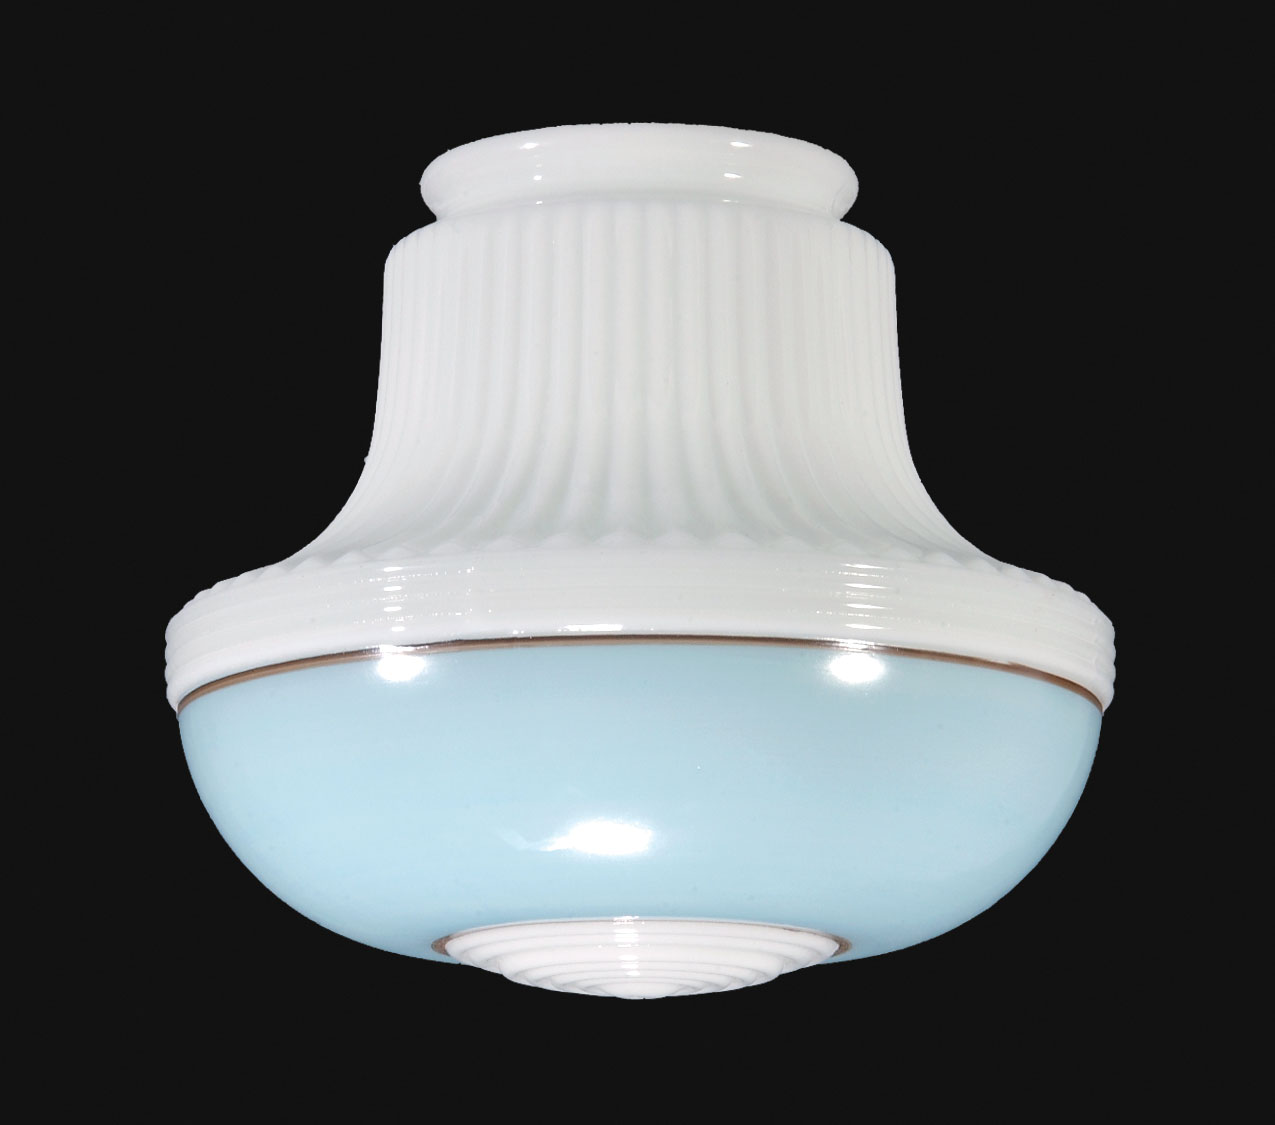 9 Opal Glass Deco Pendant Shade Turquoise Band 08880 B